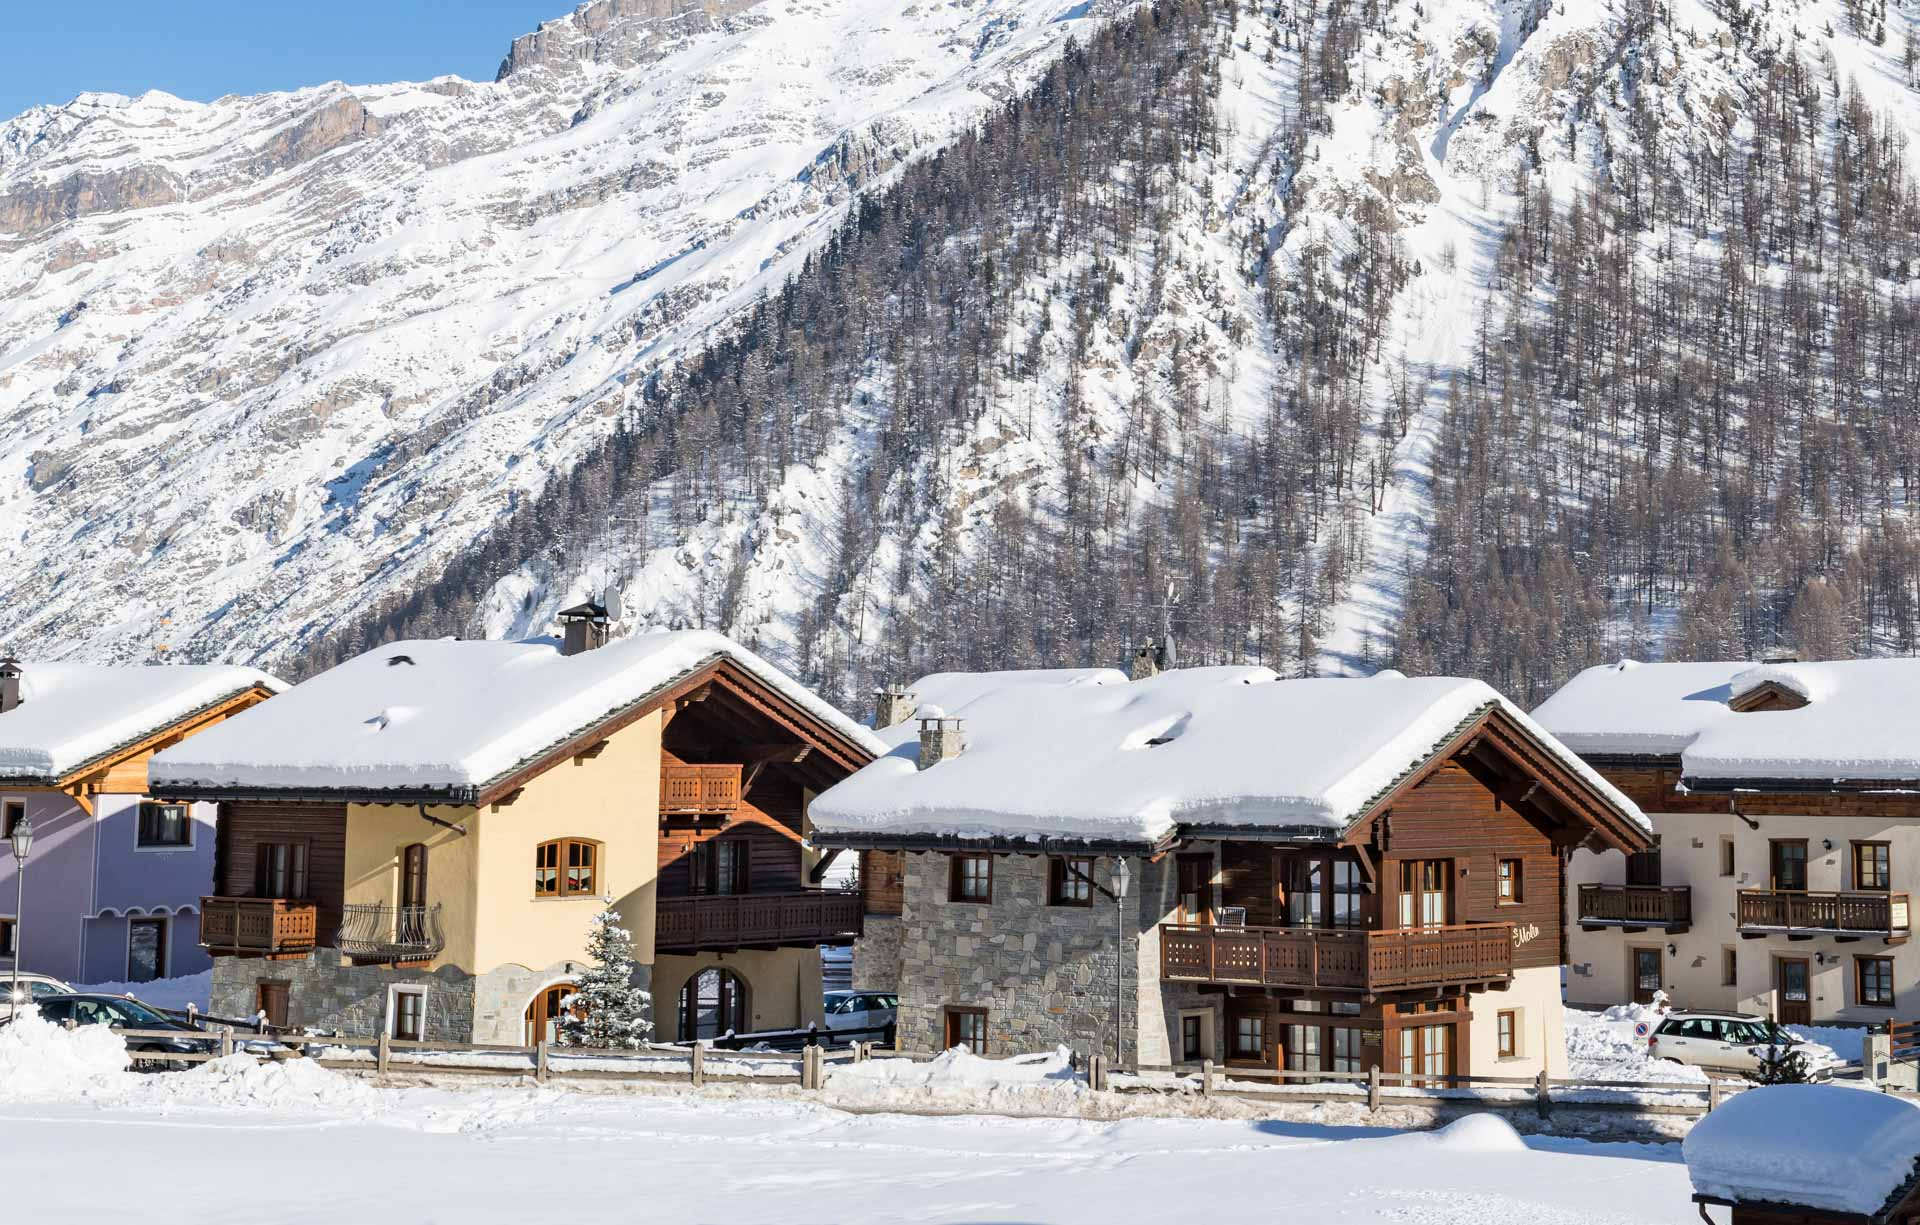 Visit Livigno in every season